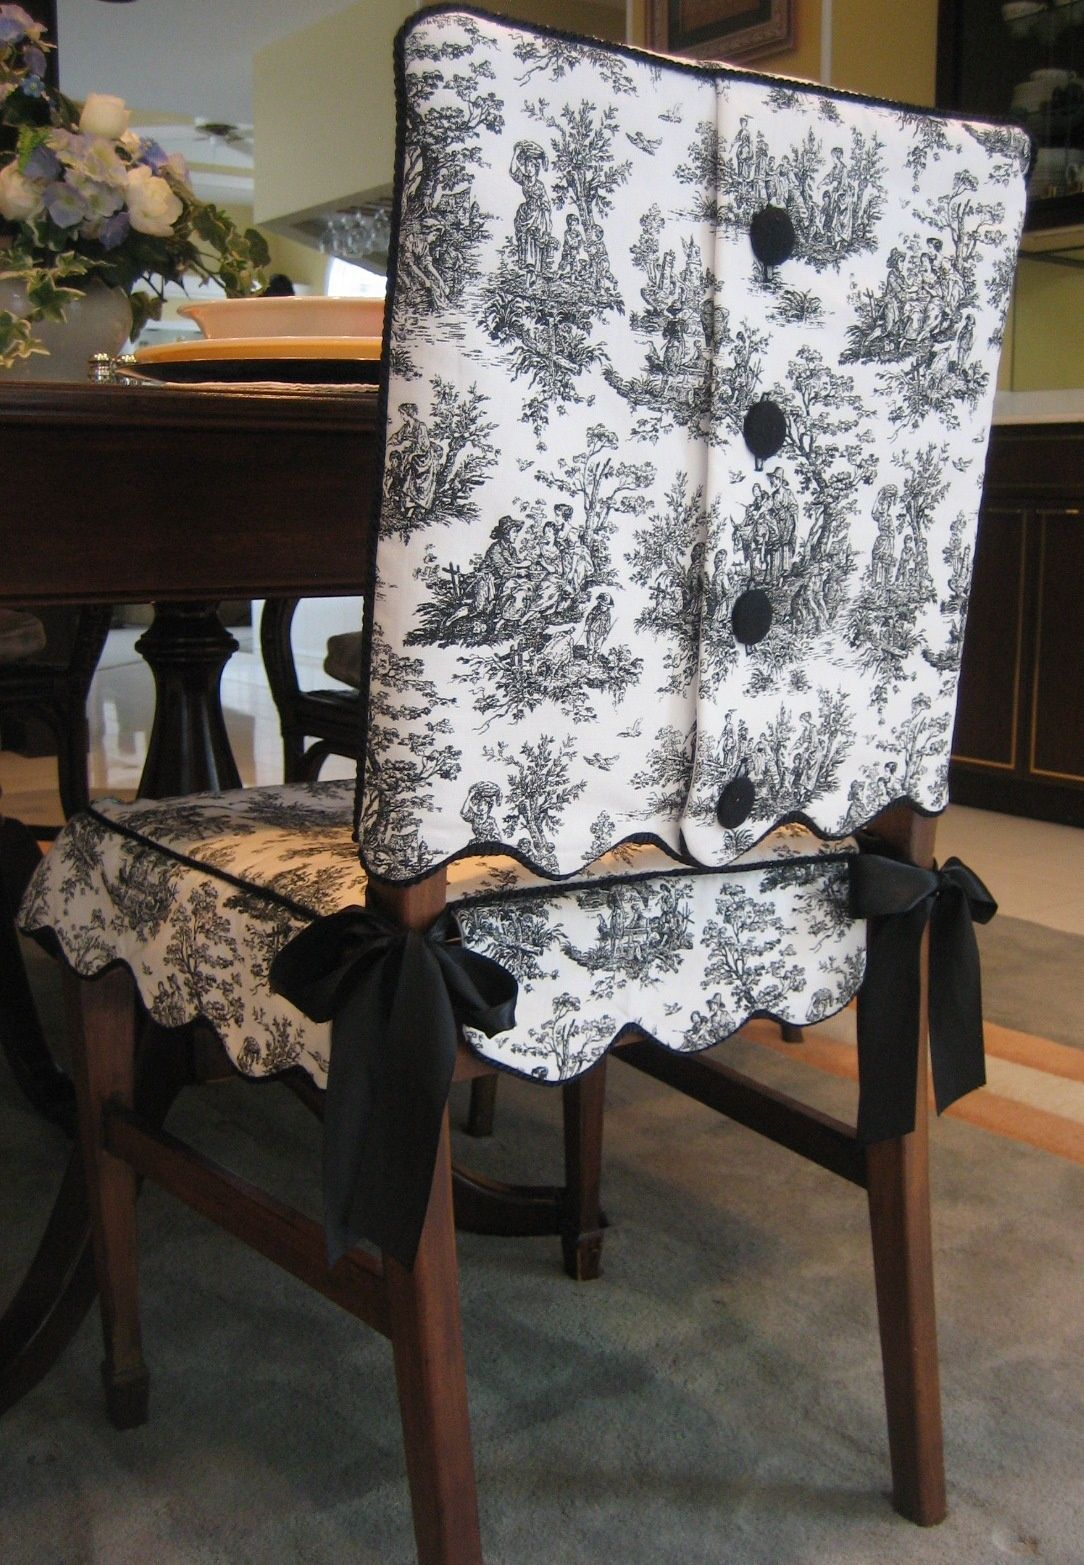 This Is My Scalloped Edge Toile Chair SuitR With Covered Button Closure Shown Here In Black And White The Skirt Ties On Coordinated Satin